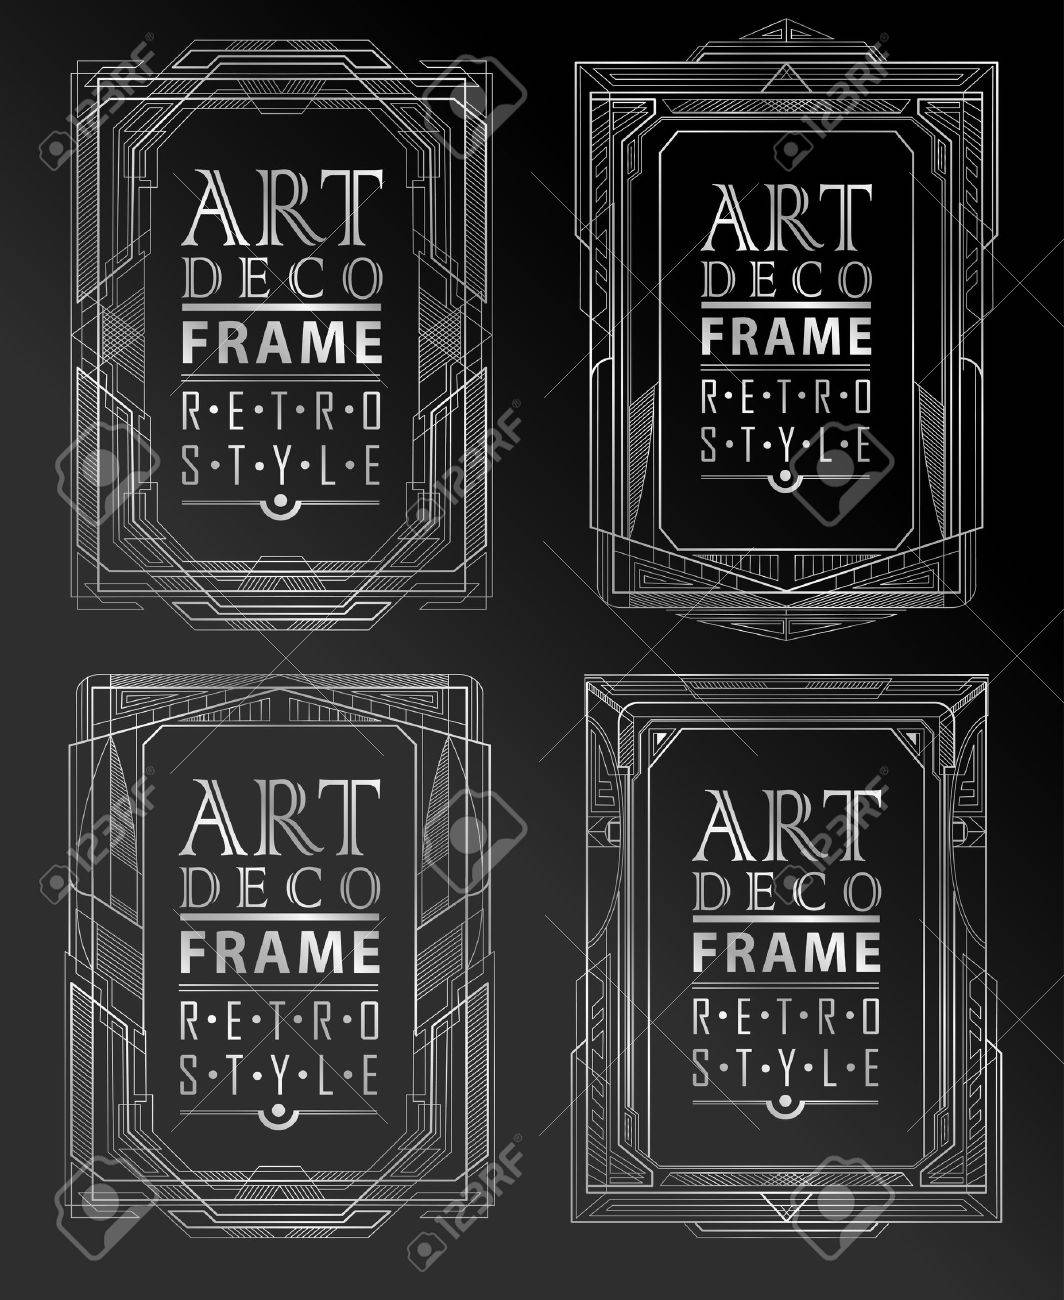 Art deco geometric vintage frame can be used for invitation, congratulation - 43344811